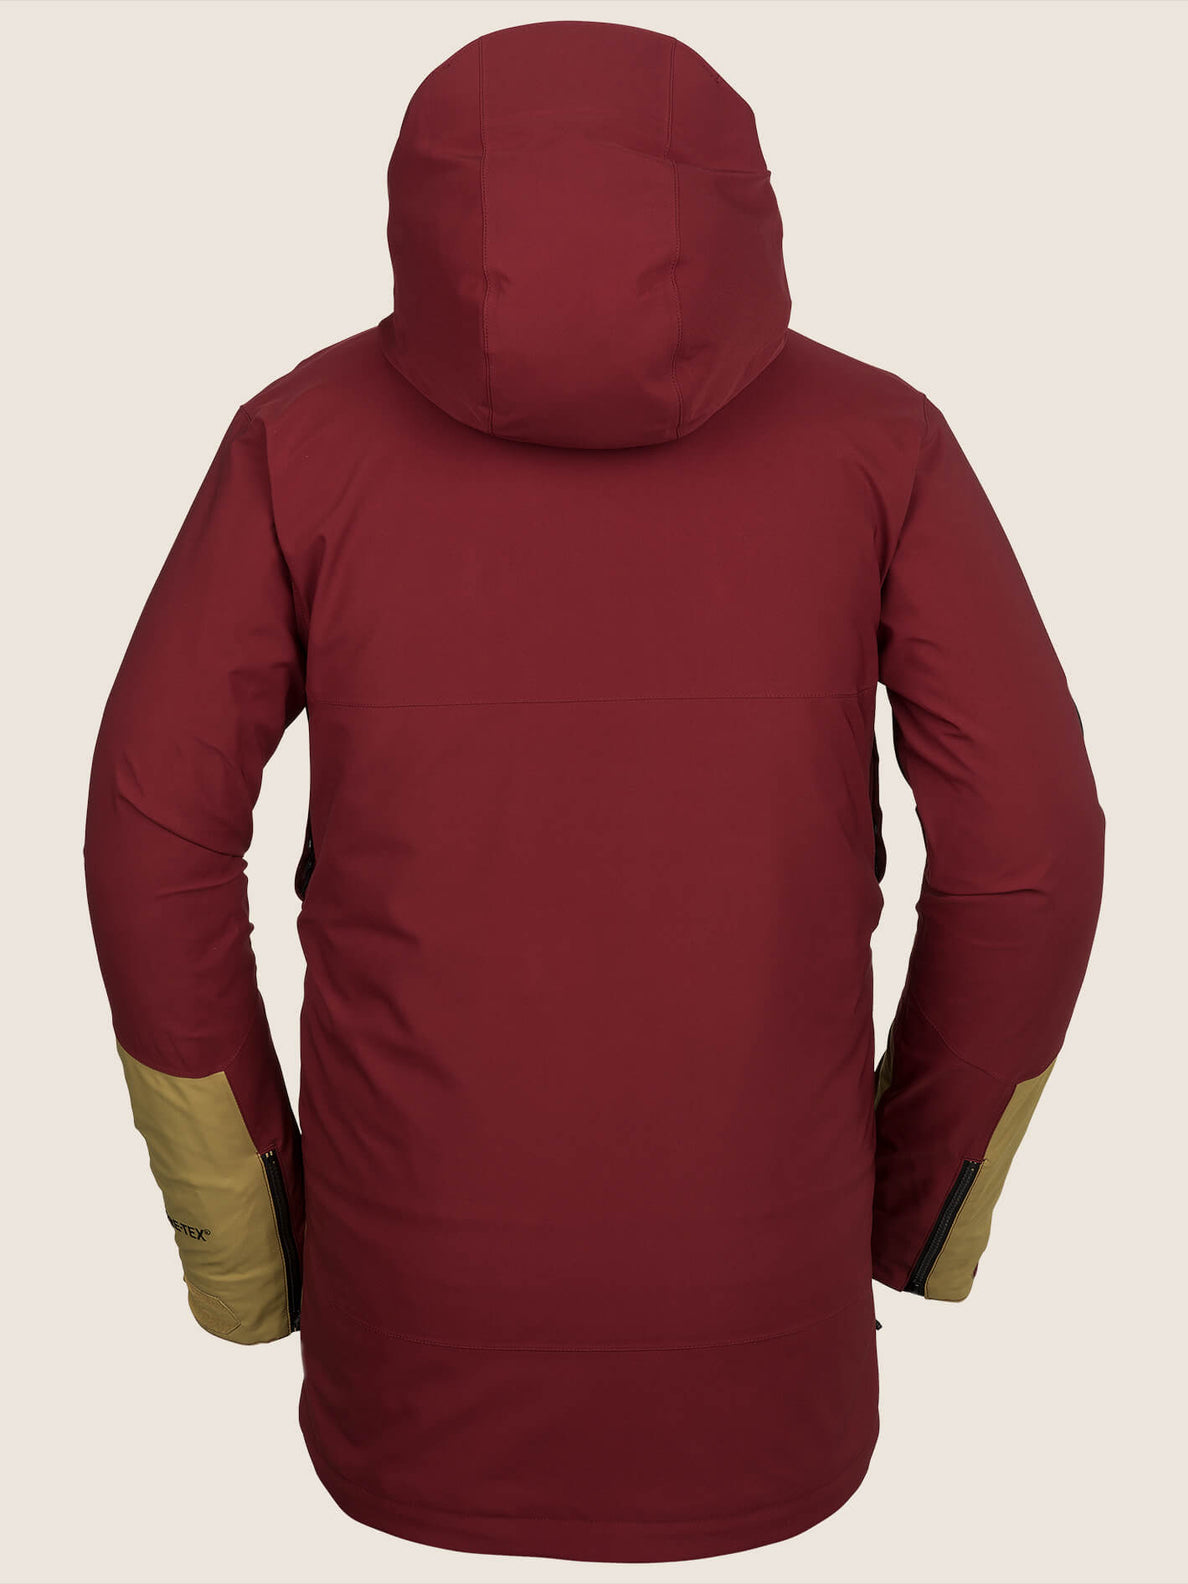 Bl Stretch Gore-tex Jacket In Burnt Red, Back View